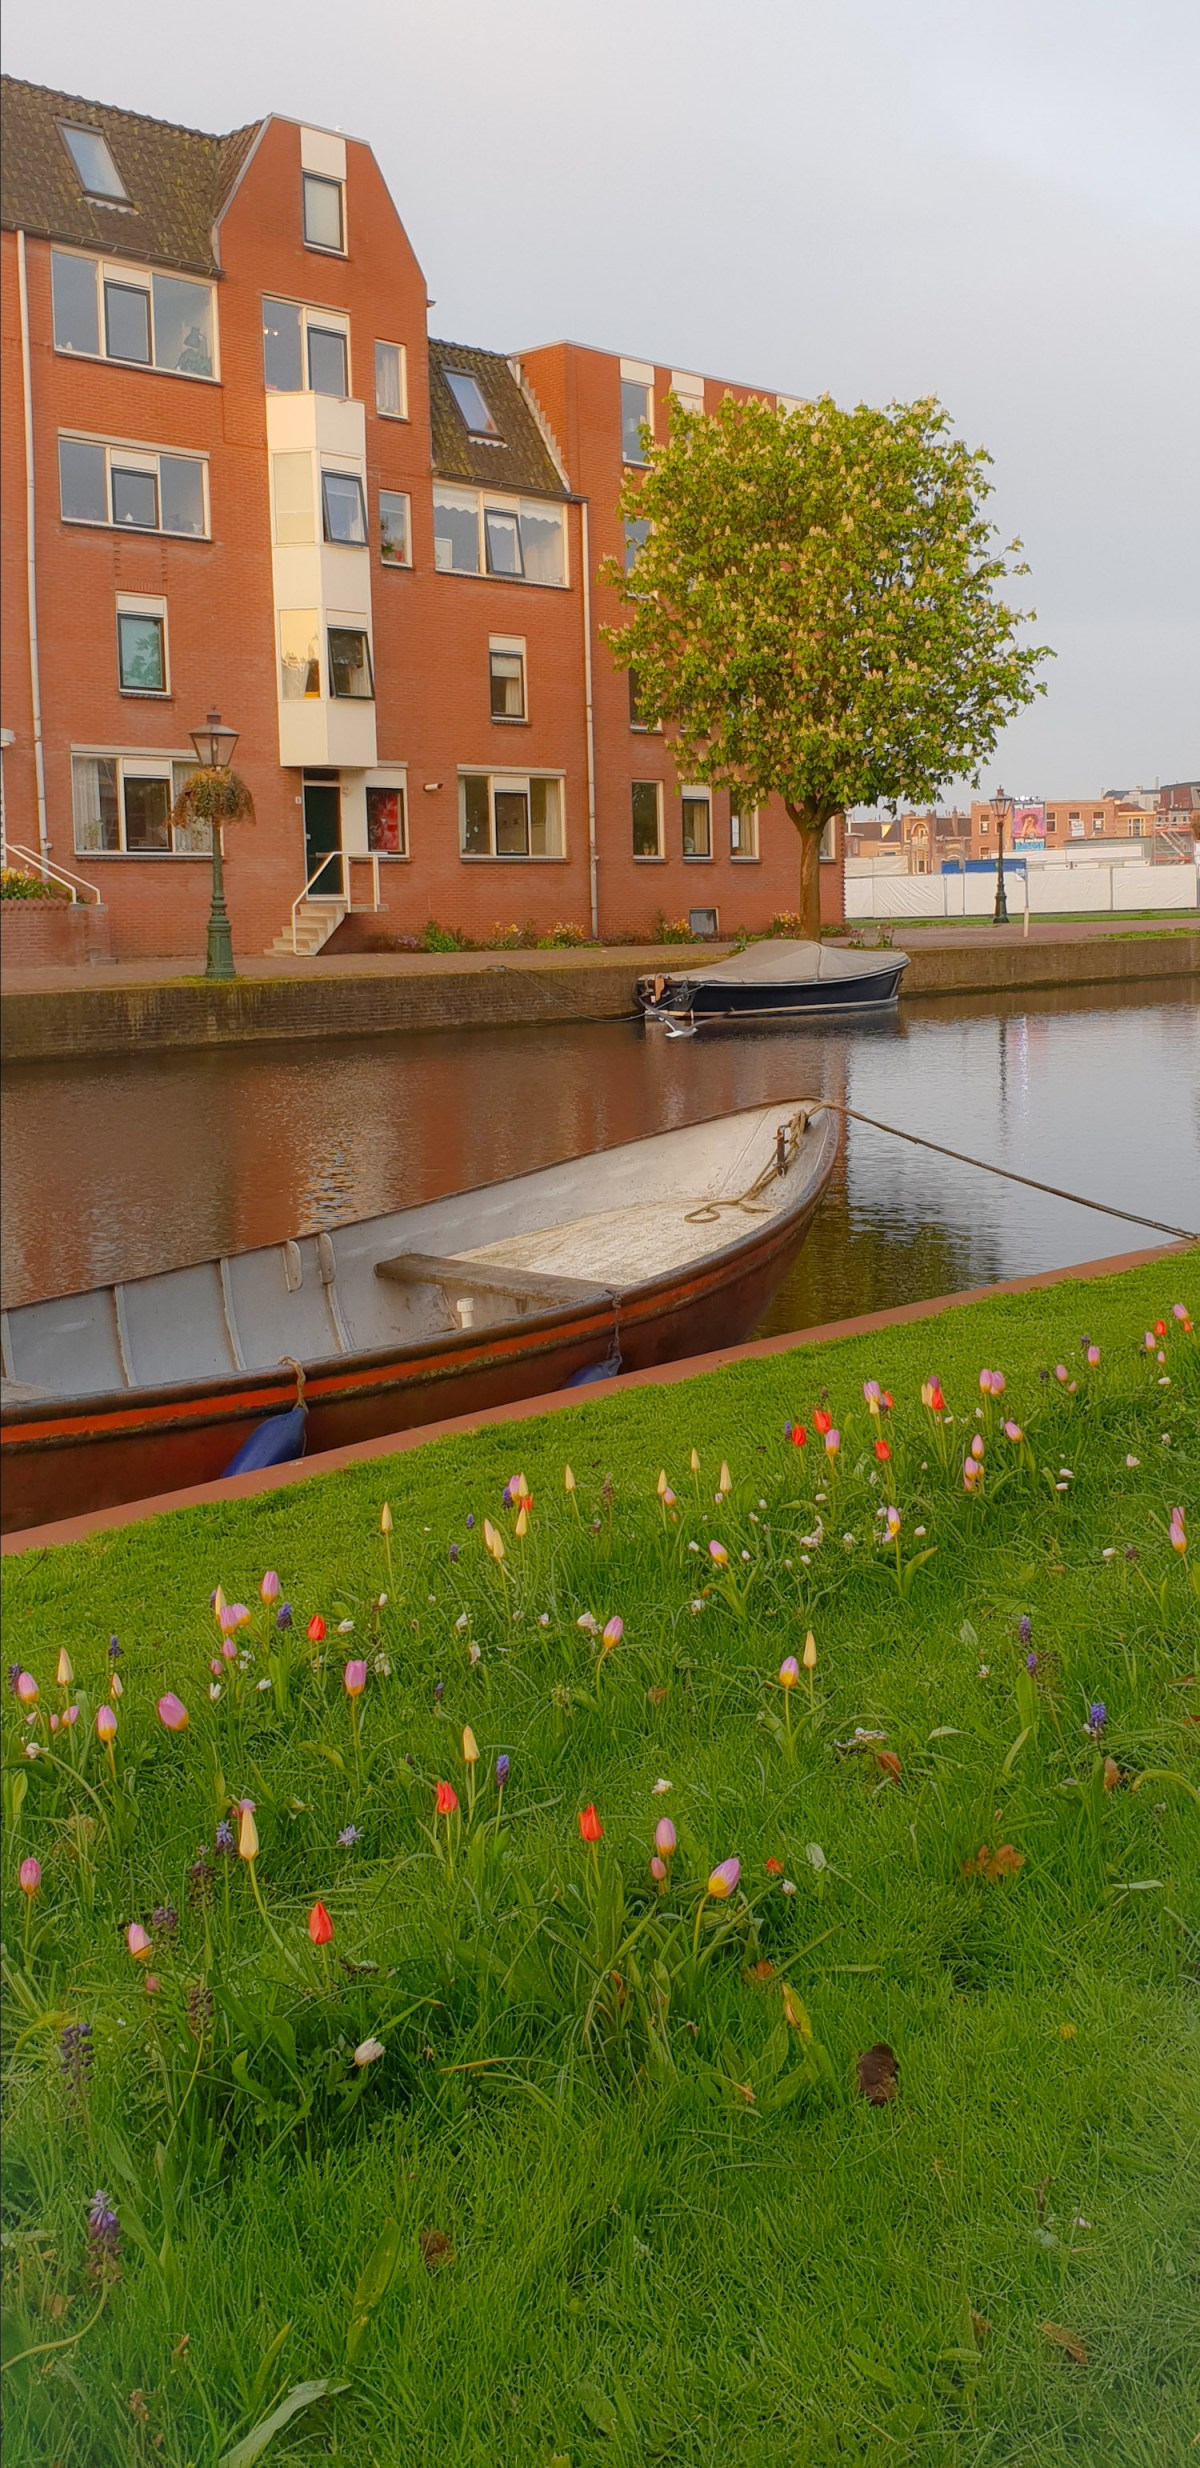 SGMT | Leiden | Boats and buildings